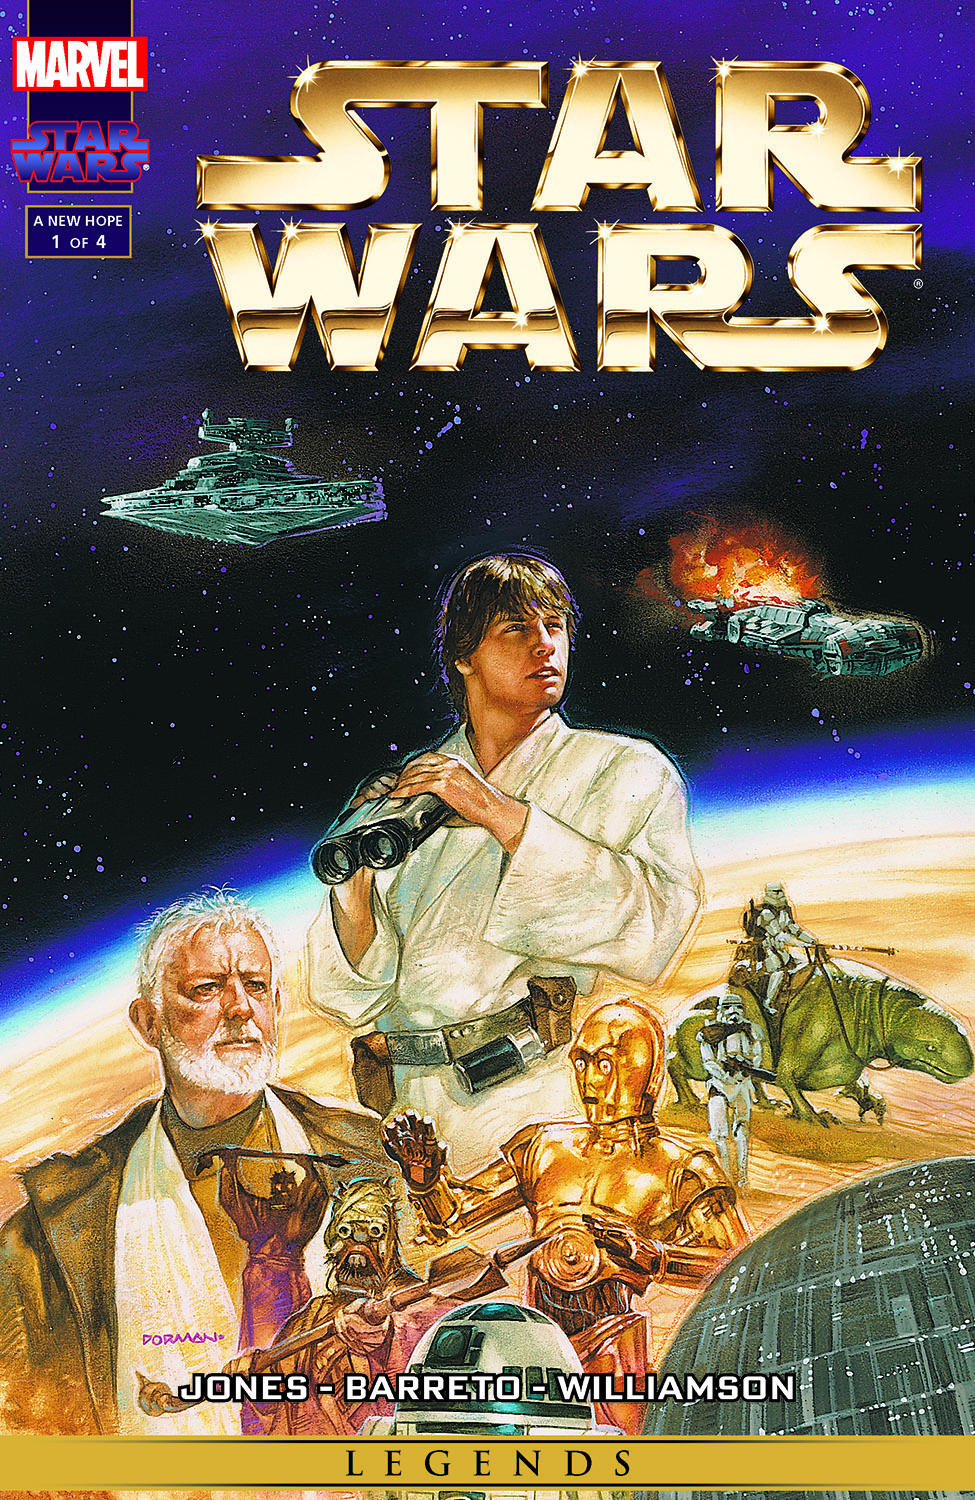 Star Wars: A New Hope - Special Edition (1997) #1